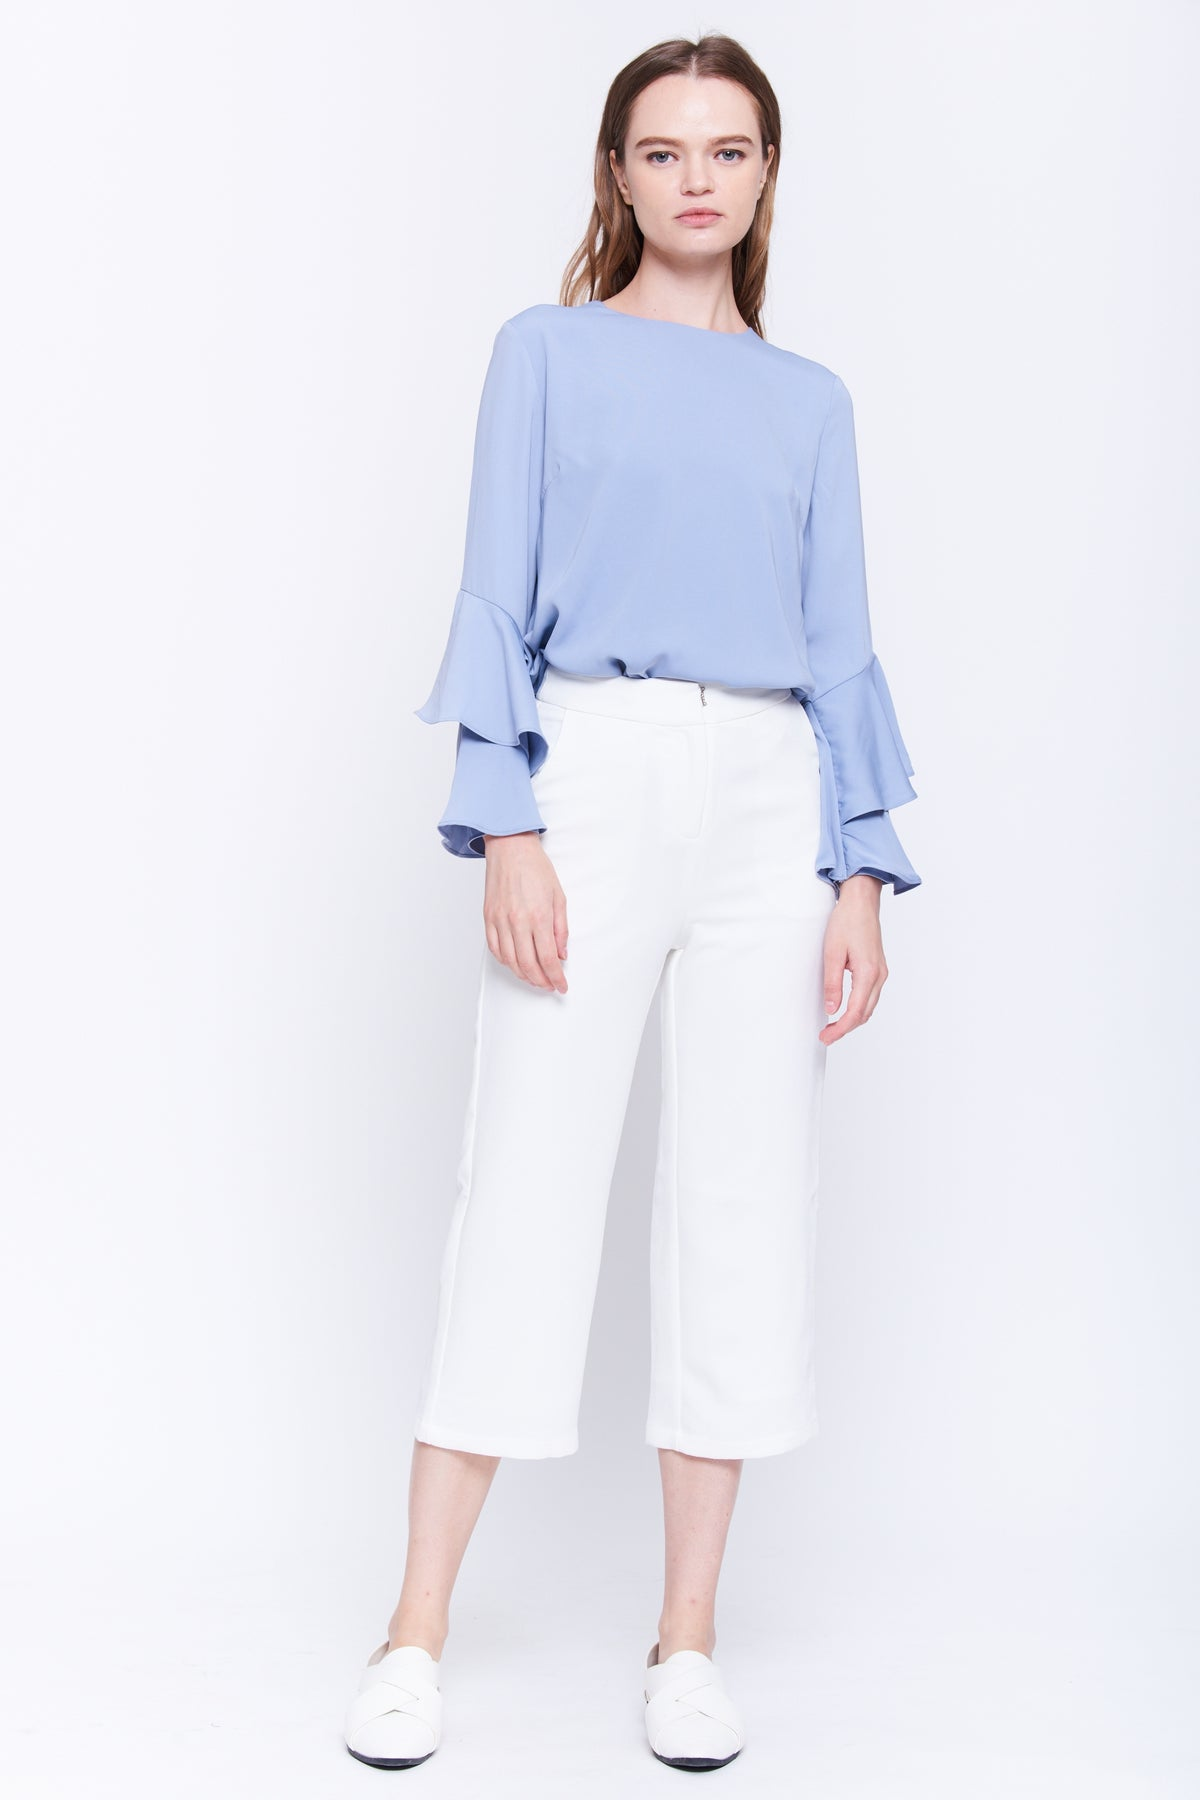 Ruffle Sleeve Blouse In Cornflower Blue